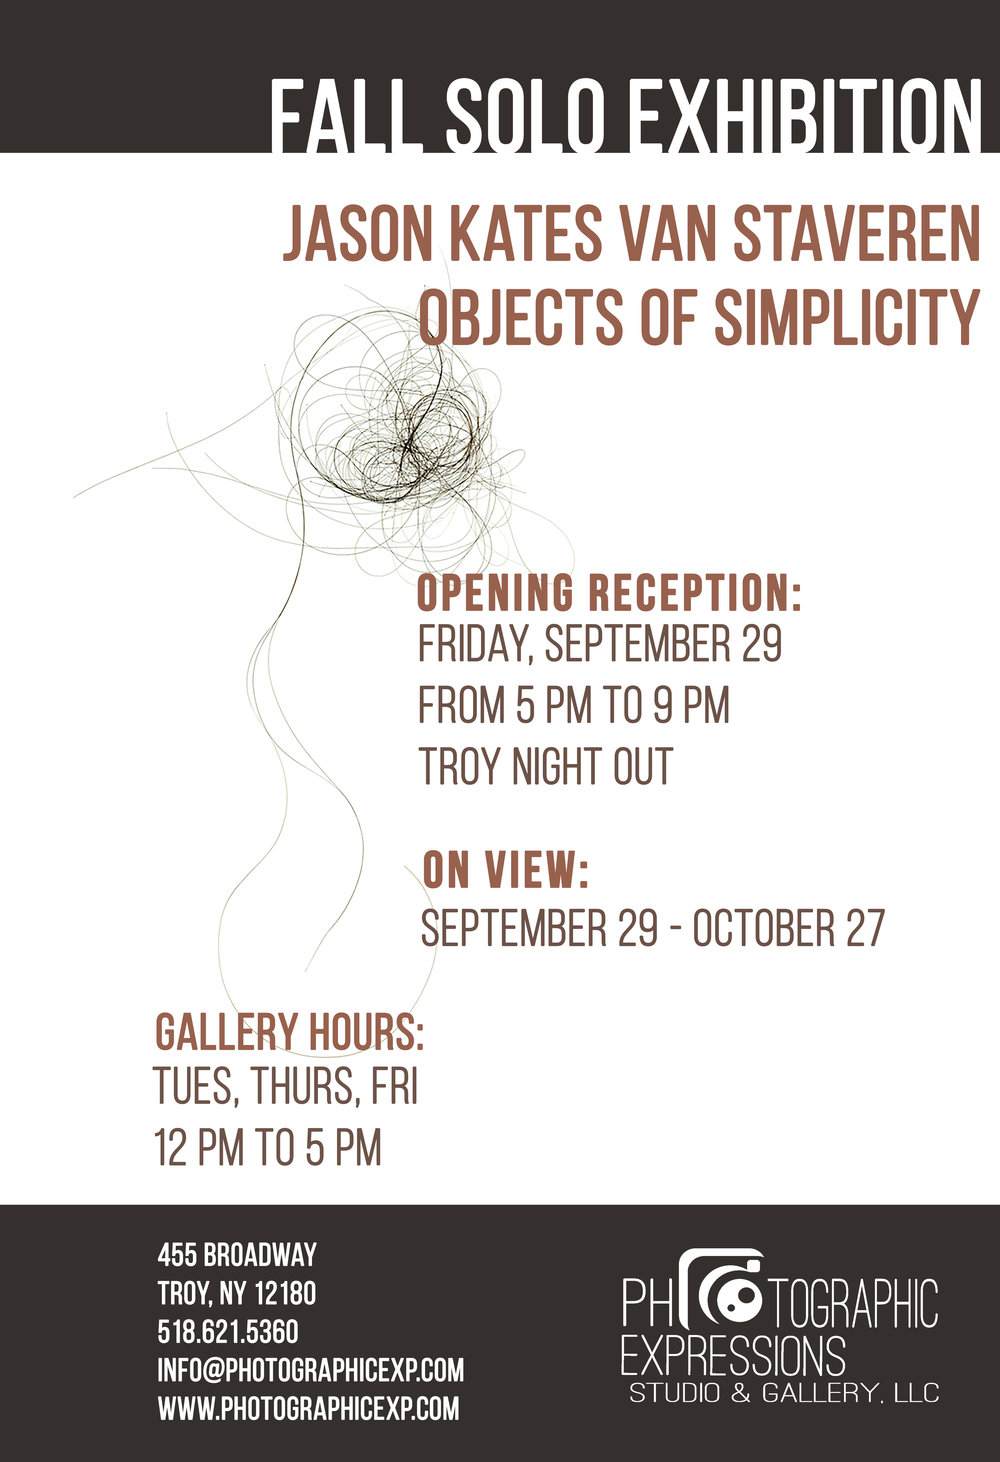 FALL SOLO EXHIBITION: Jason van Staveren, Objects of Simplicity